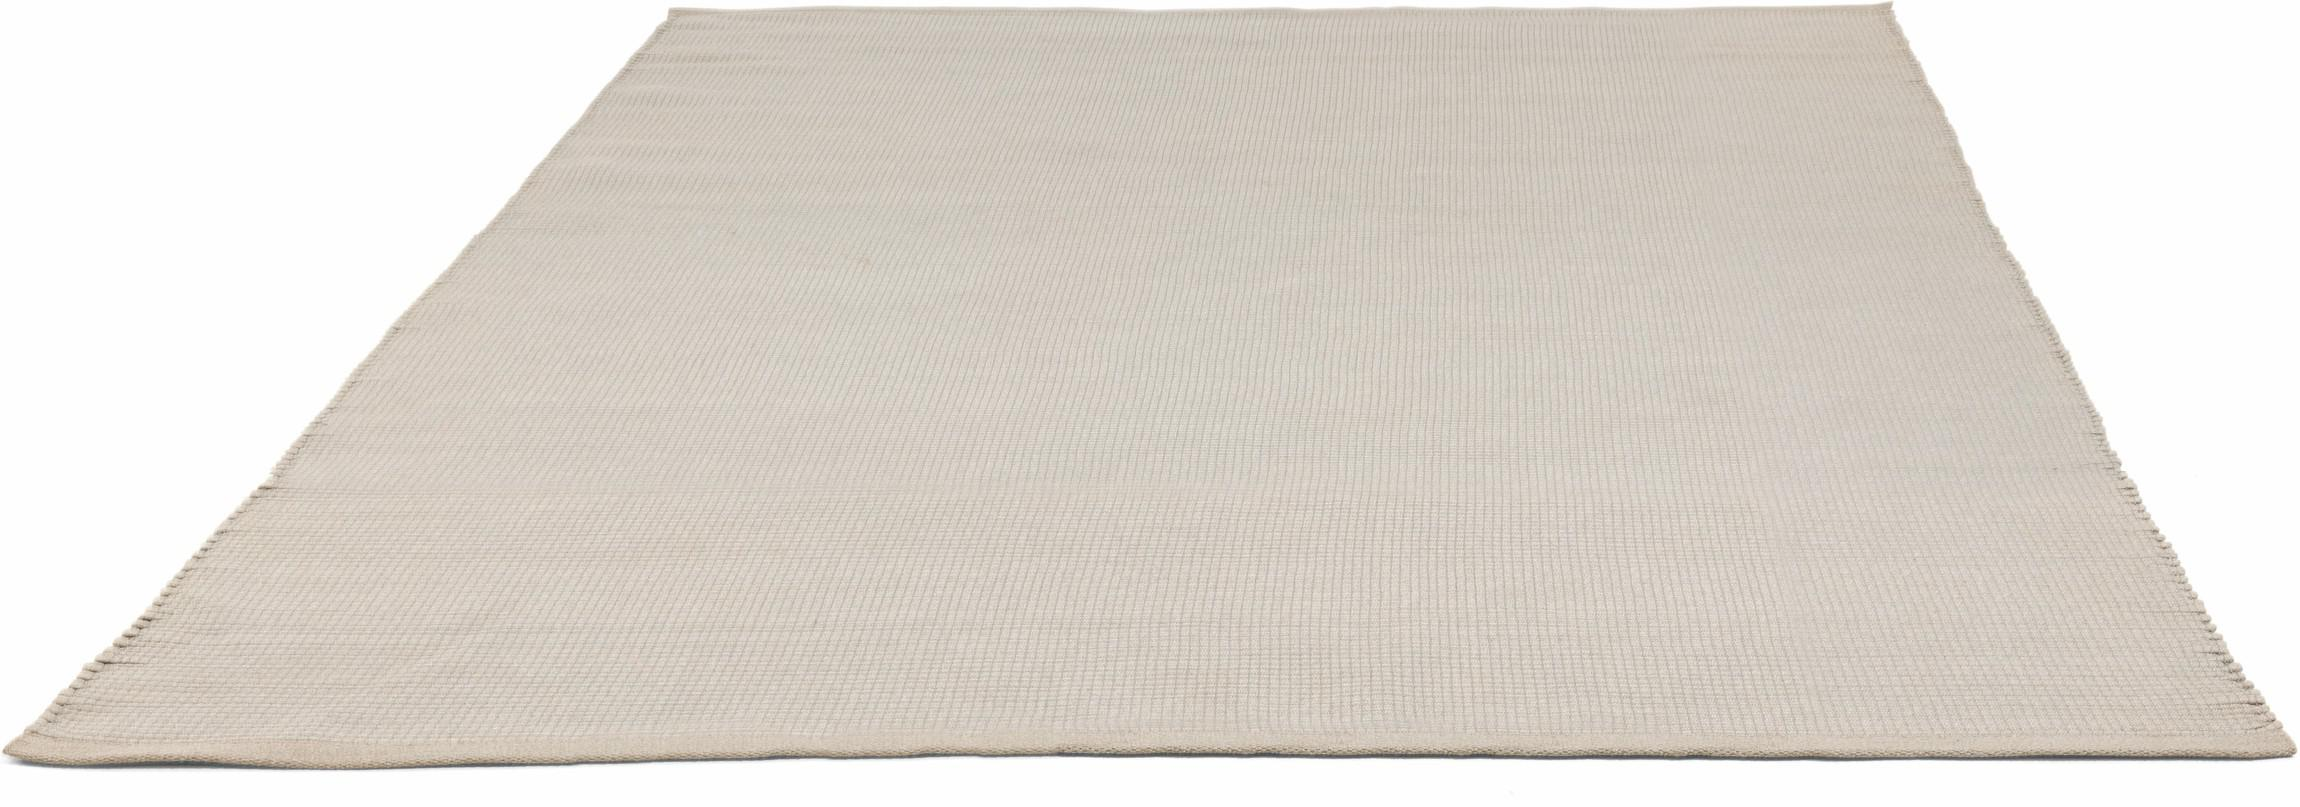 Rugs Linear 200x290 pepper